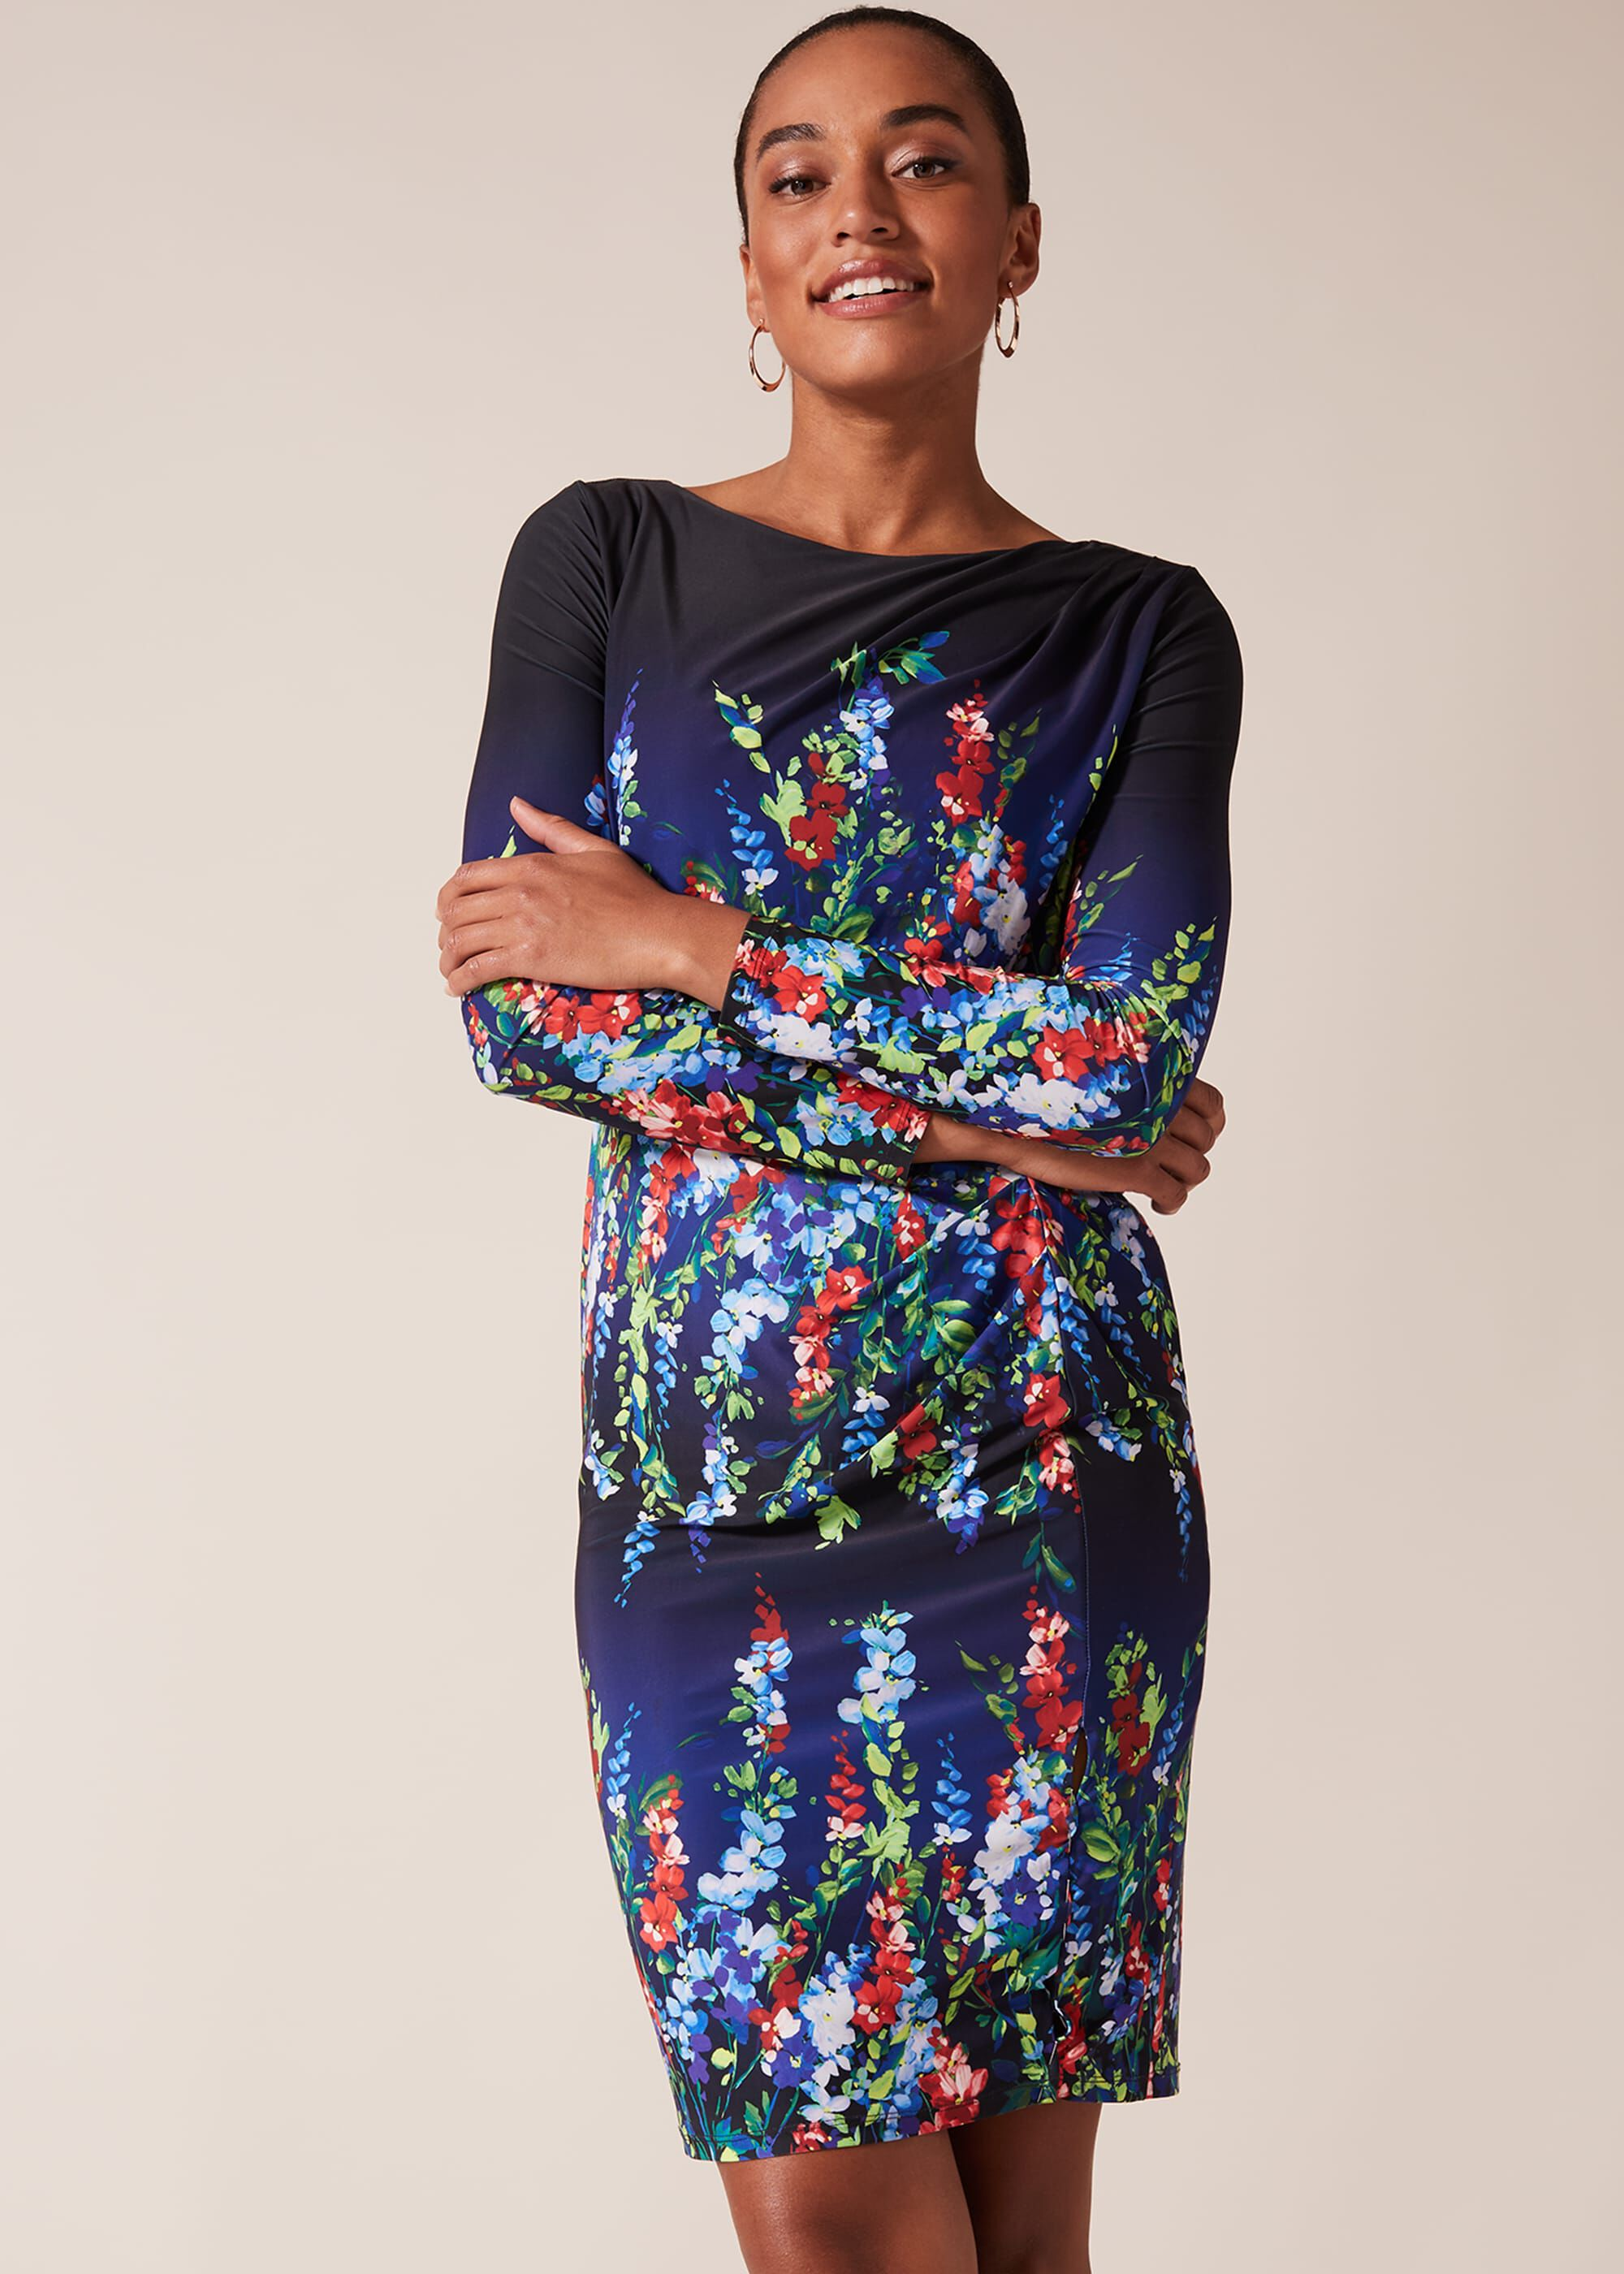 Phase Eight Kris Floral Placement Print Dress, Multicoloured, Fitted